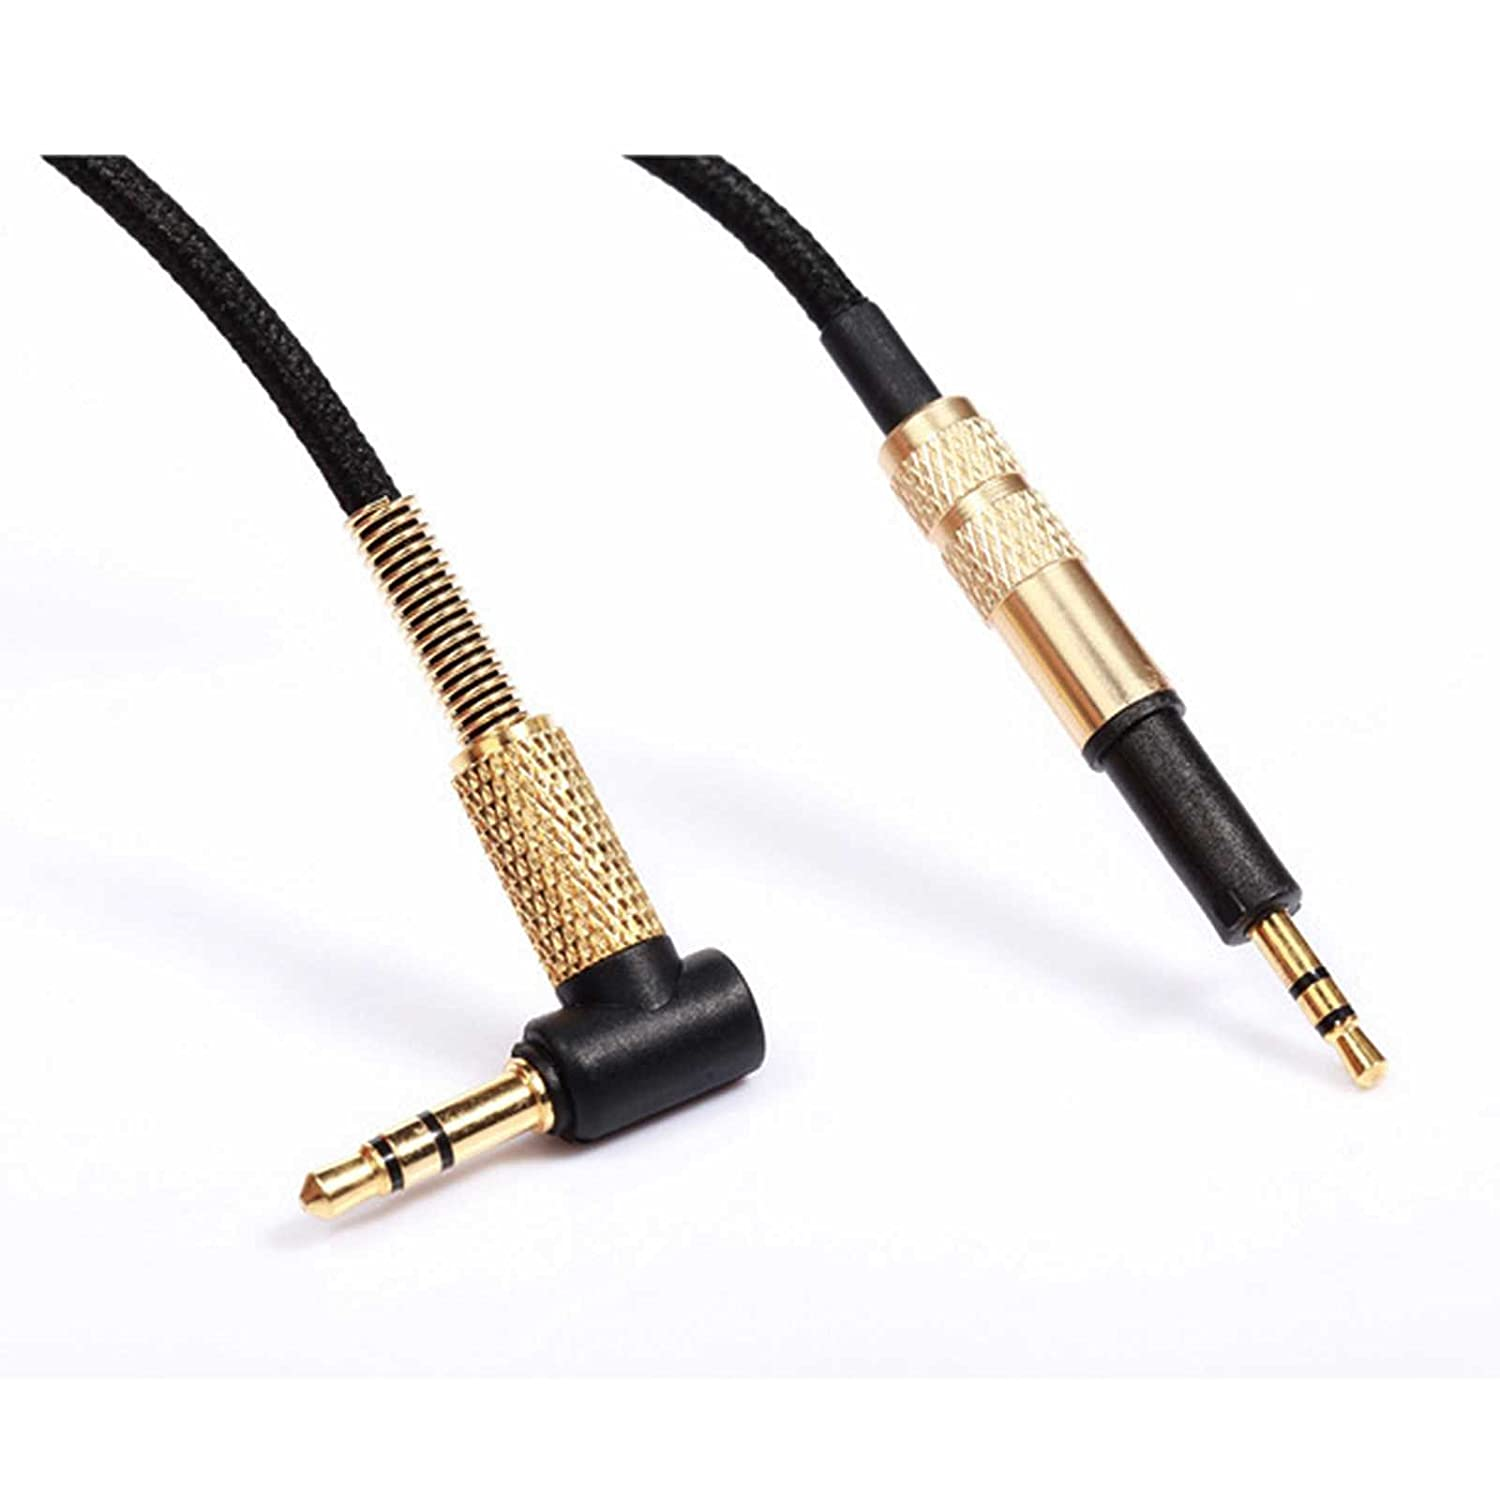 J/&D 2 x 6.35 mm to 2RCA Cable Audiowave Series 15 Feet Gold-Plated 2X 6.35mm 1//4 Male TS to 2 RCA Male PVC Shelled Stereo Audio Adapter Cable